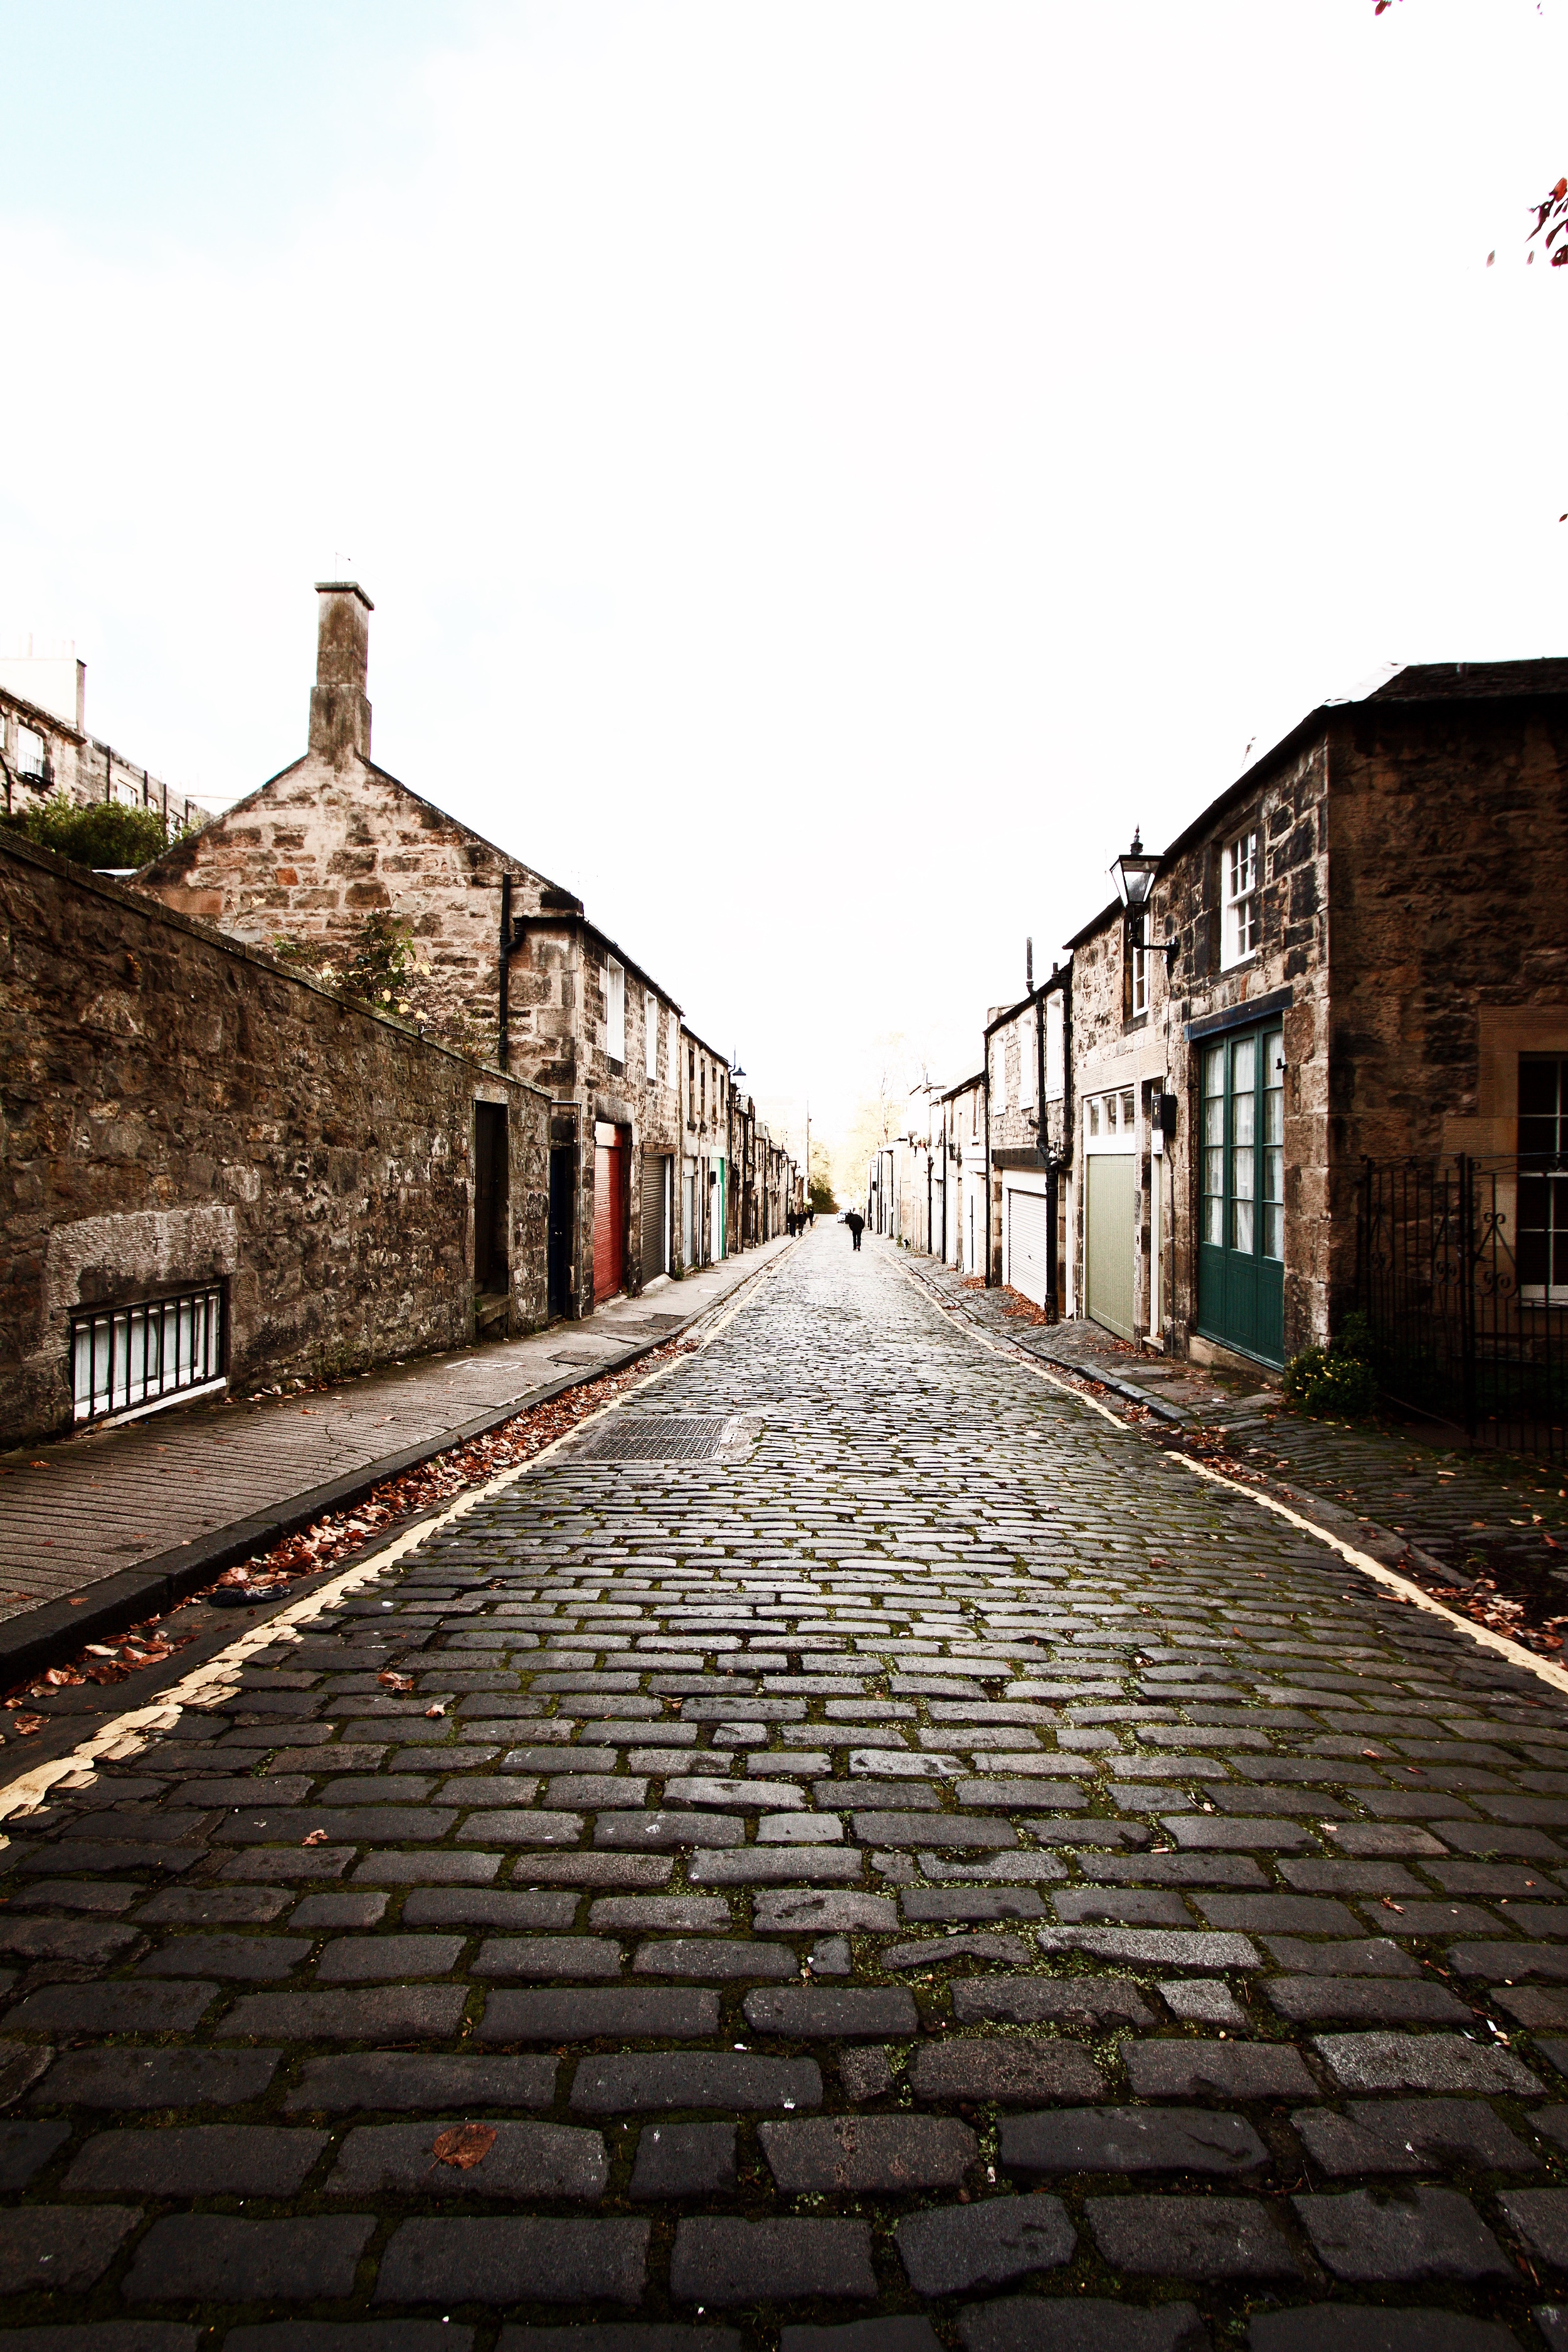 The cobble stone street leading to Nira Caledonia from the city center